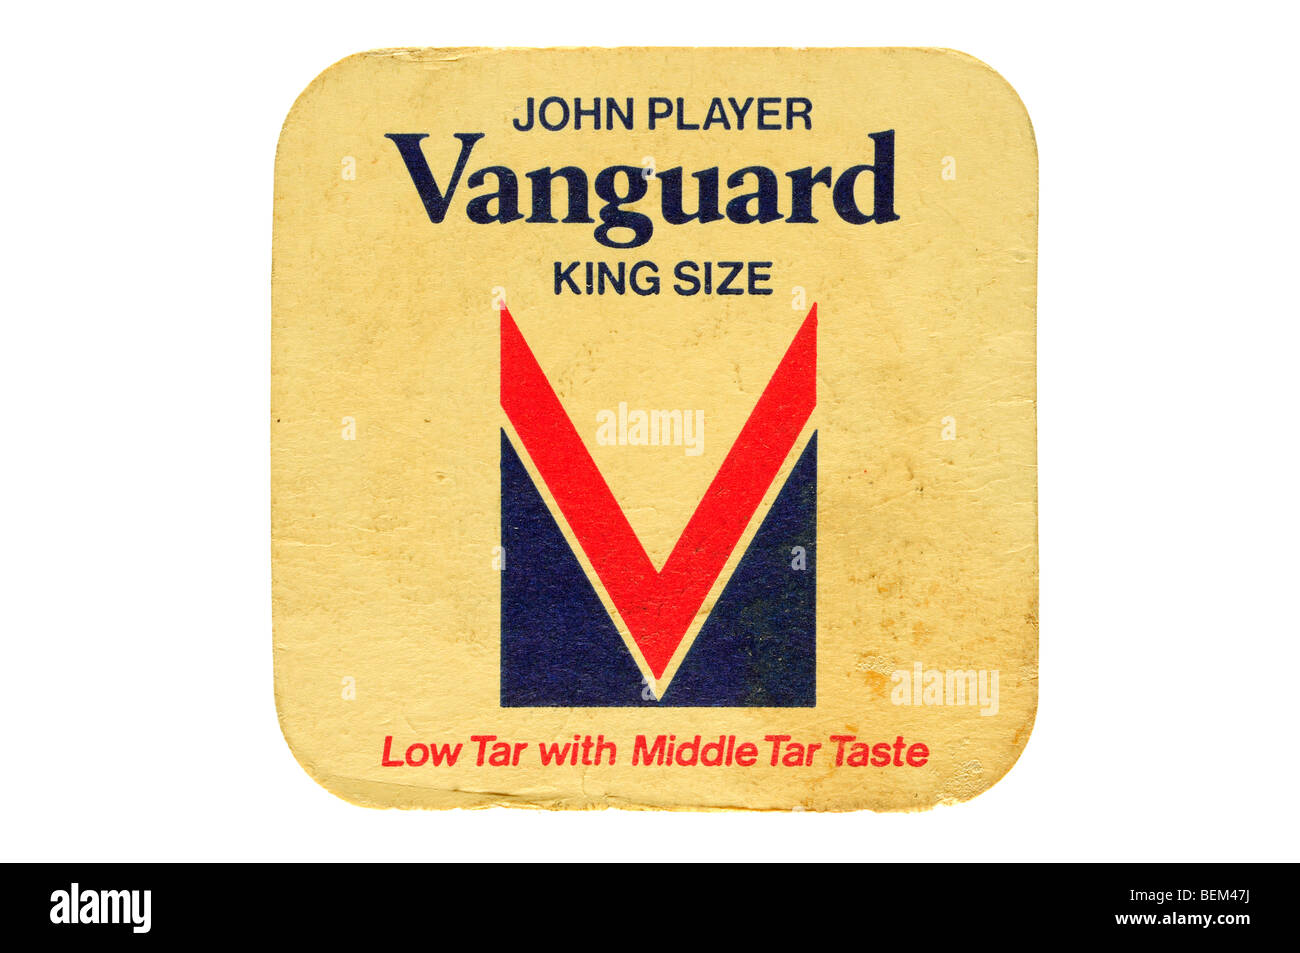 john player vanguard king size low tar with middle tar taste - Stock Image